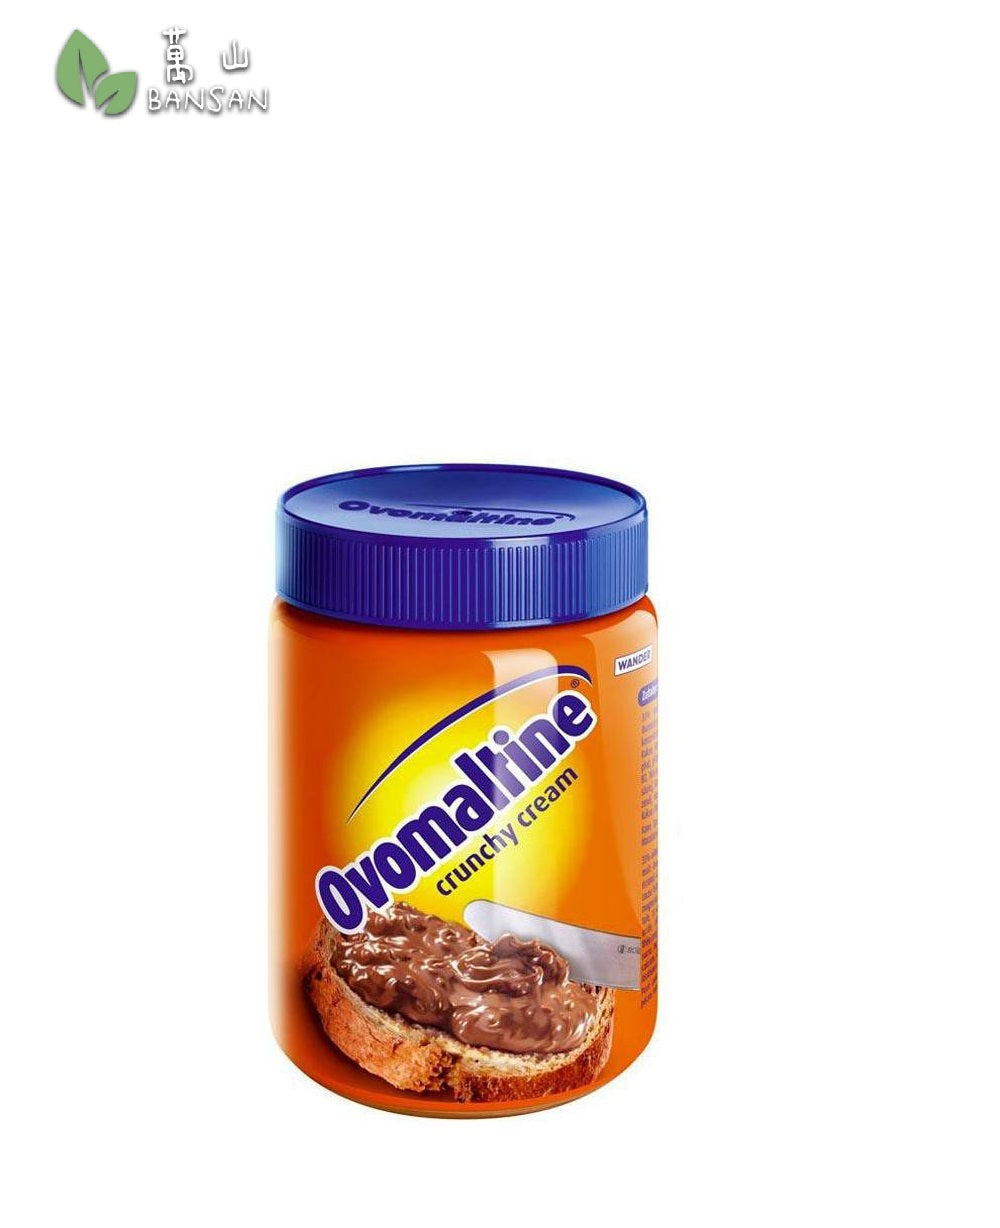 Penang Grocery Store Online Next Day Delivery is Offering Ovomaltine Crunchy Cream (380g) Chocolate Jam